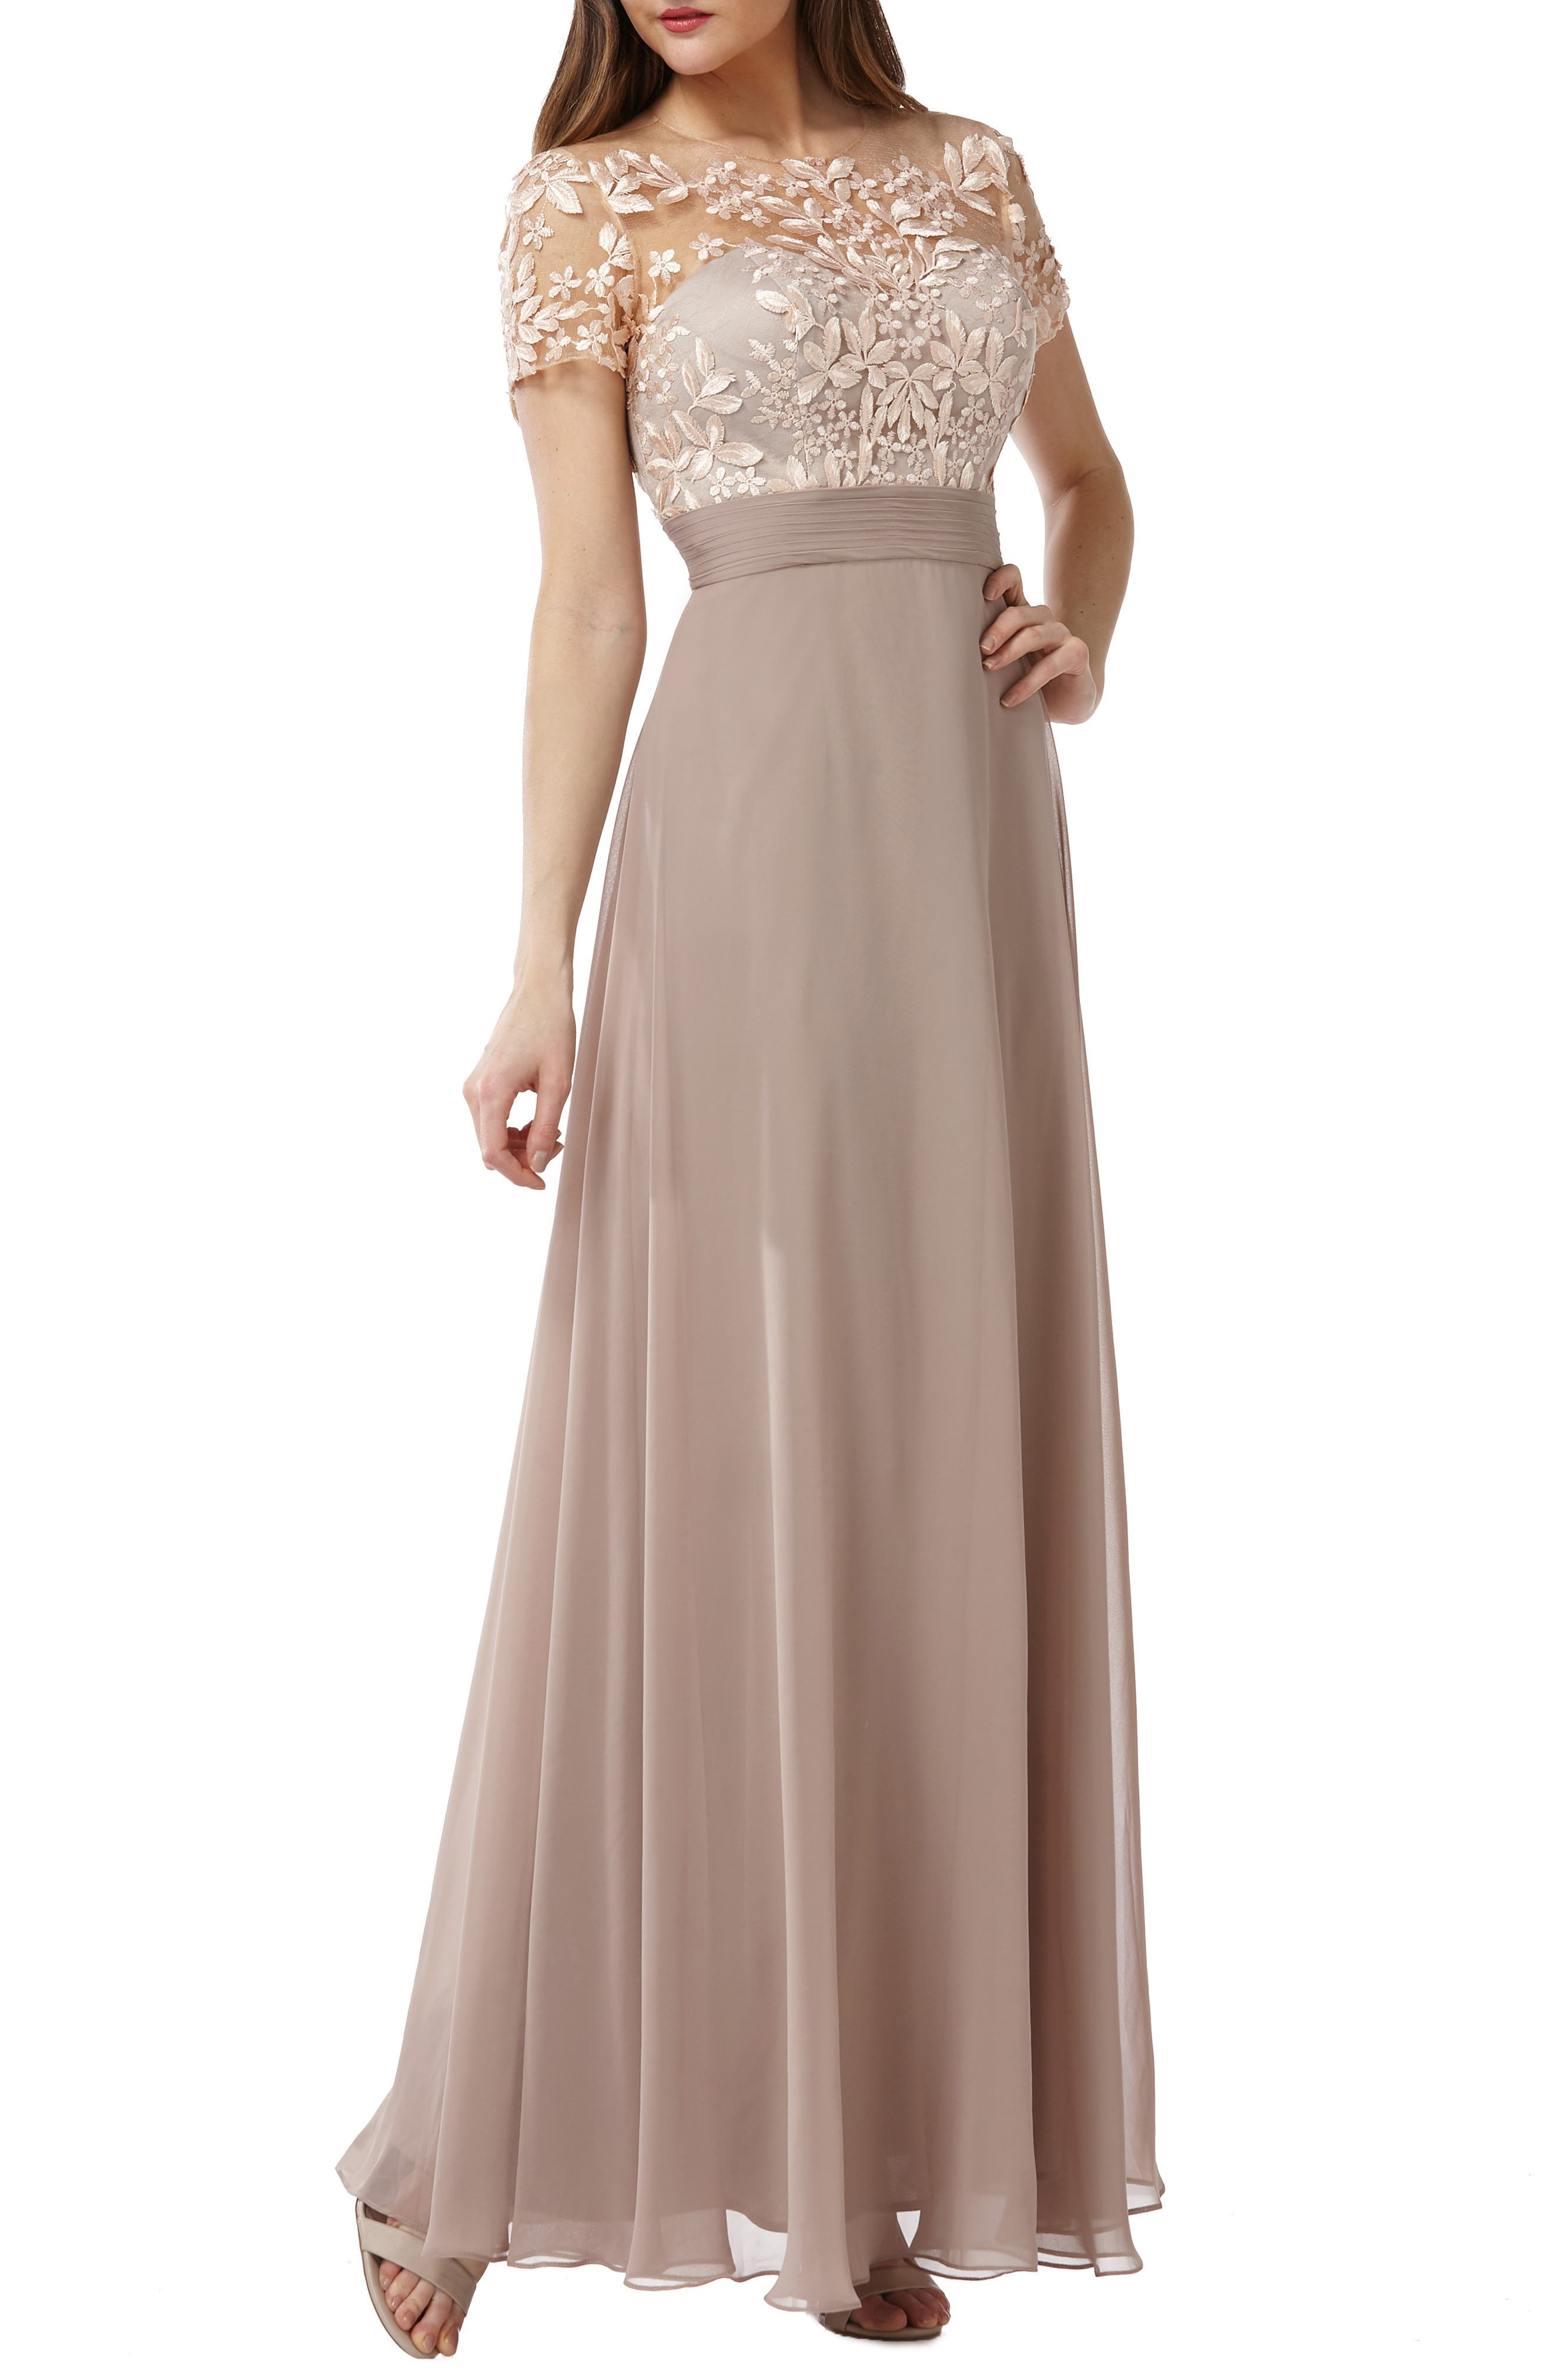 JS COLLECTIONS Embroidered Illusion Bodice Gown, Main, color, BLUSH/ NUDE